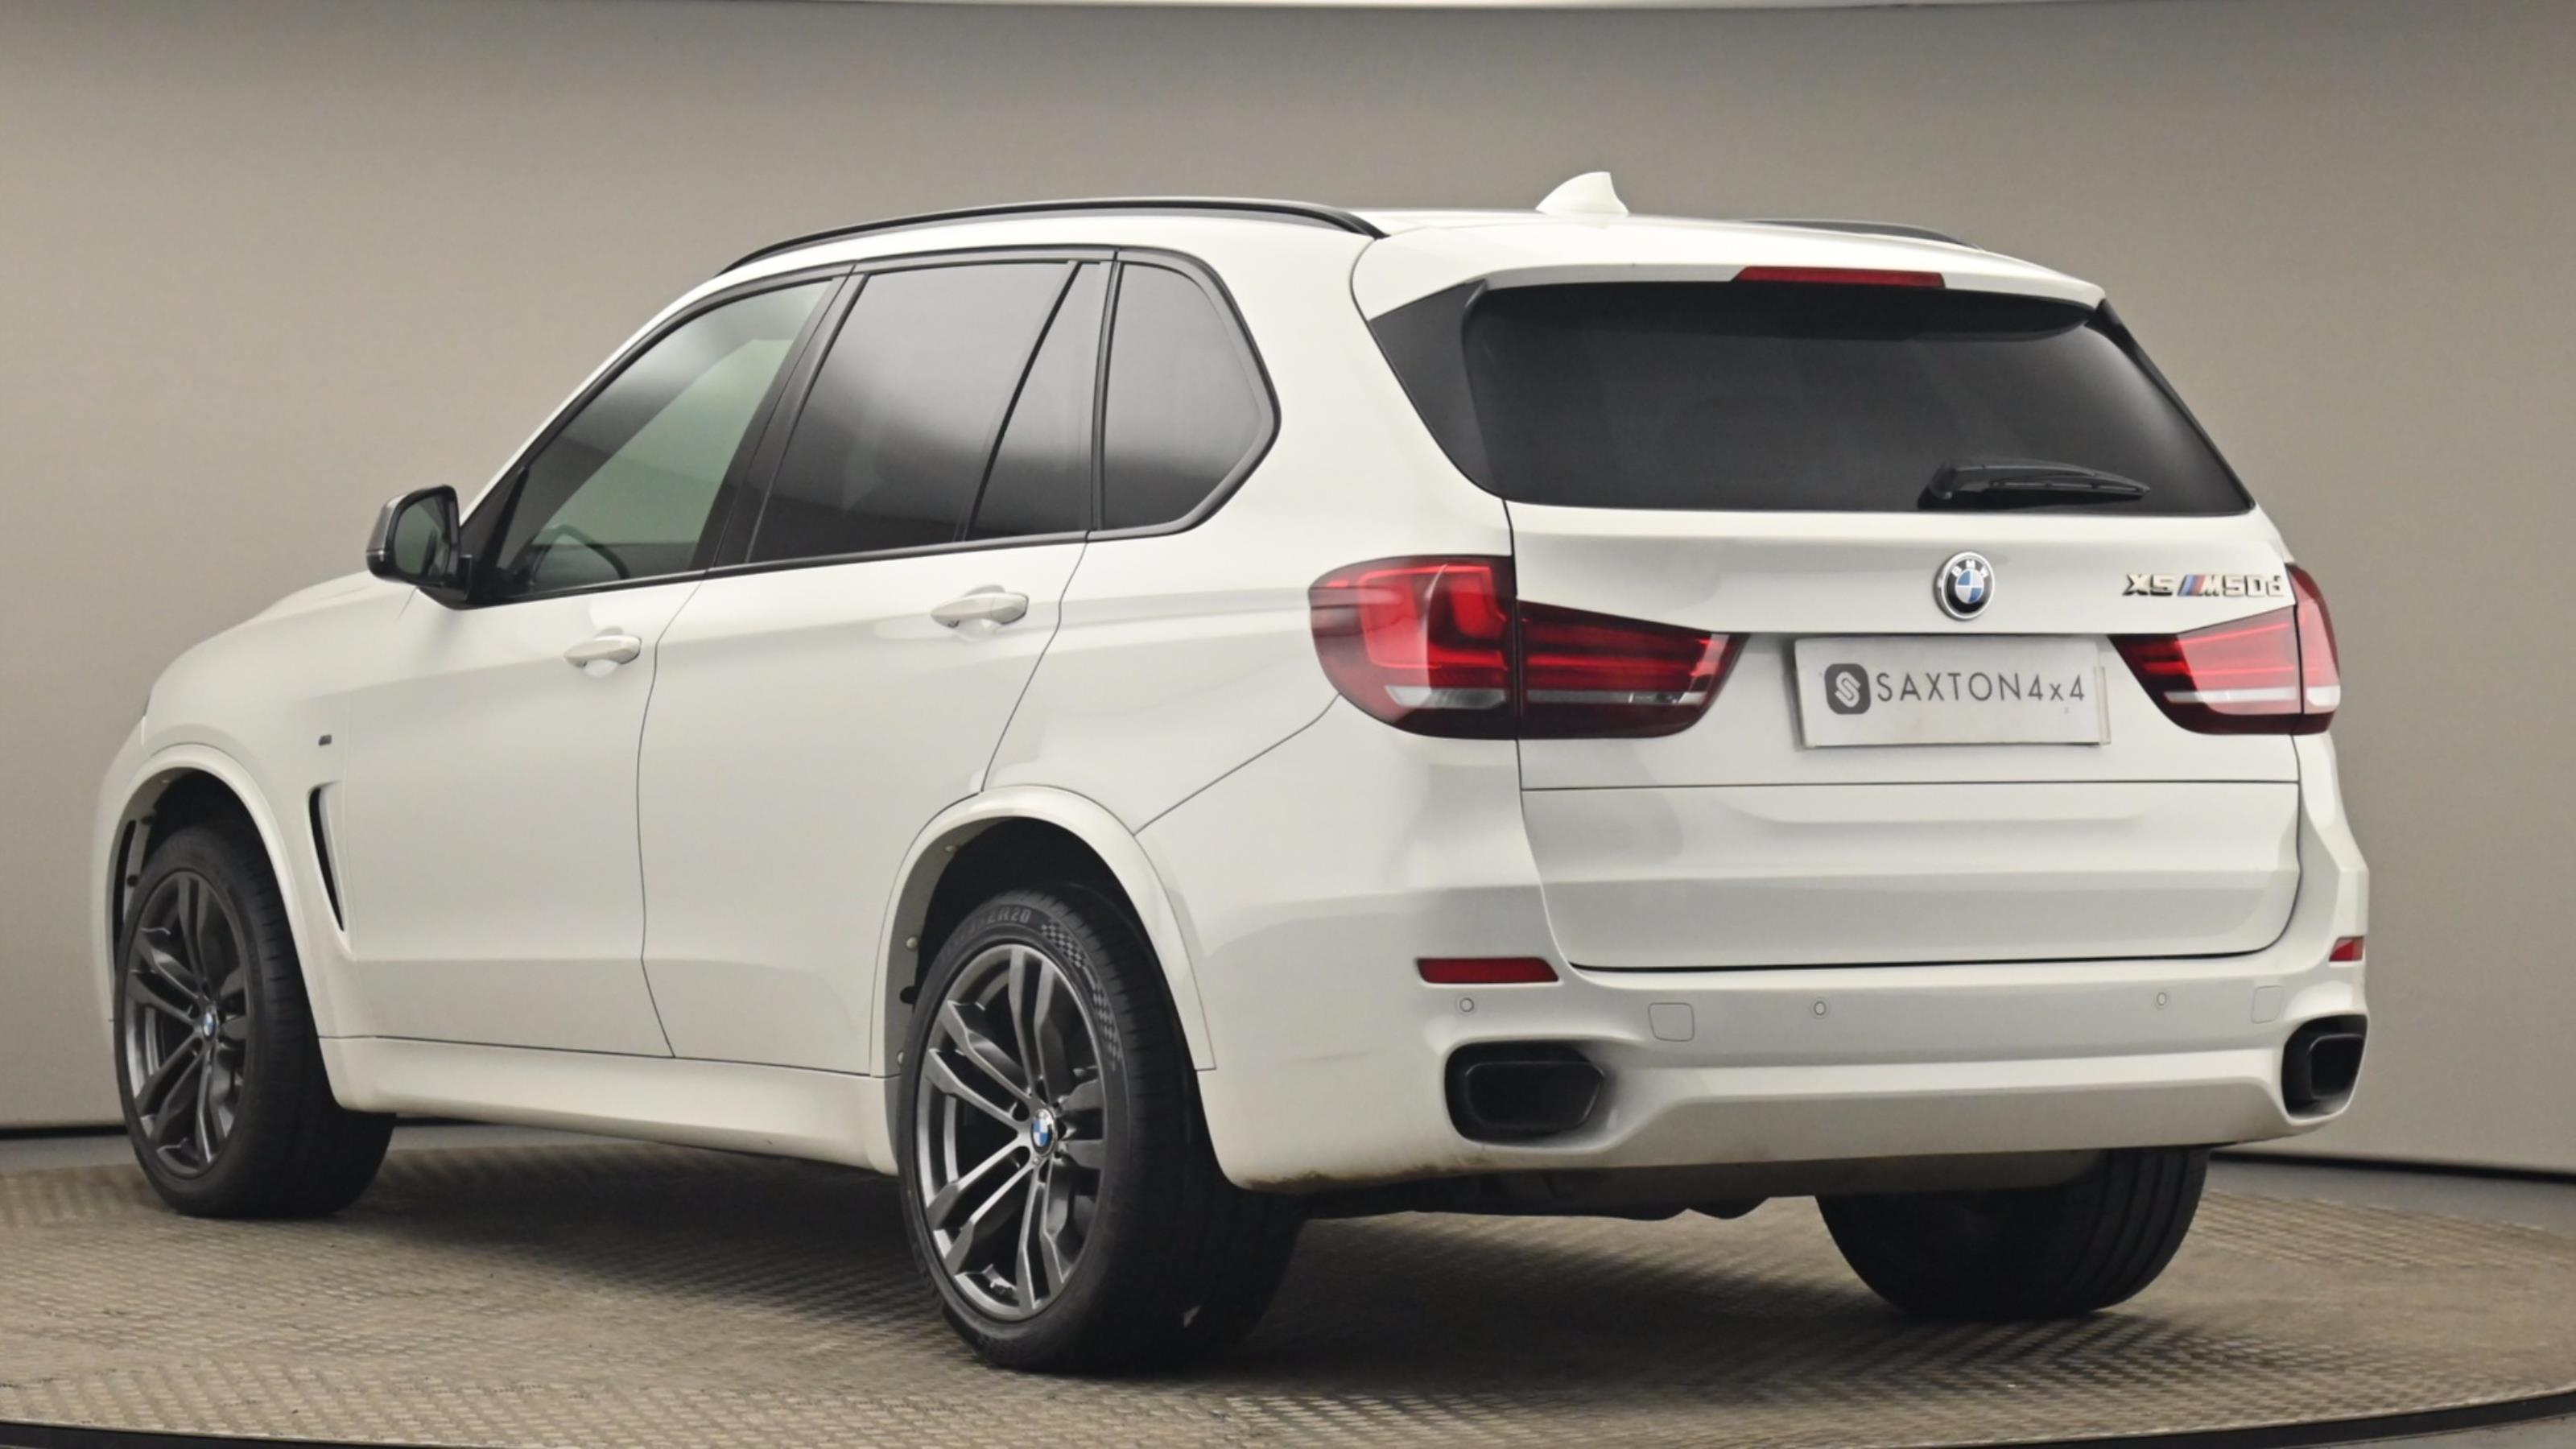 Used 2016 BMW X5 xDrive M50d 5dr Auto WHITE at Saxton4x4